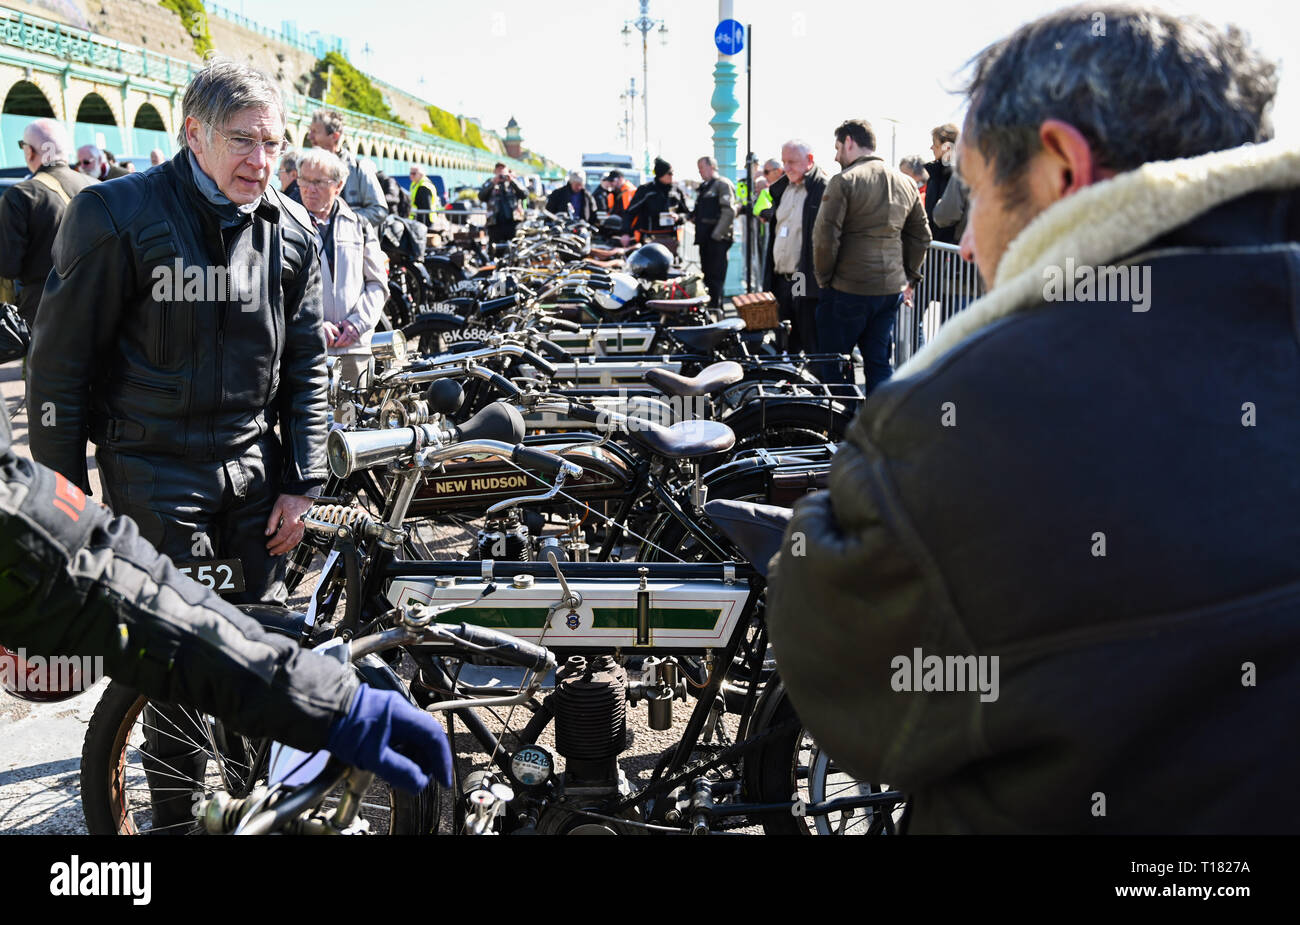 Brighton, UK. 24th March 2019. Visitors enjoy the 80th Anniversary Pioneer Run for pre 2015 veteran motorcycles in Brighton . The run organised by the Sunbeam Motor Cycle Club begins on the Epsom Downs in Surrey and finishes on Madeira Drive on Brighton seafront Credit: Simon Dack/Alamy Live News Stock Photo